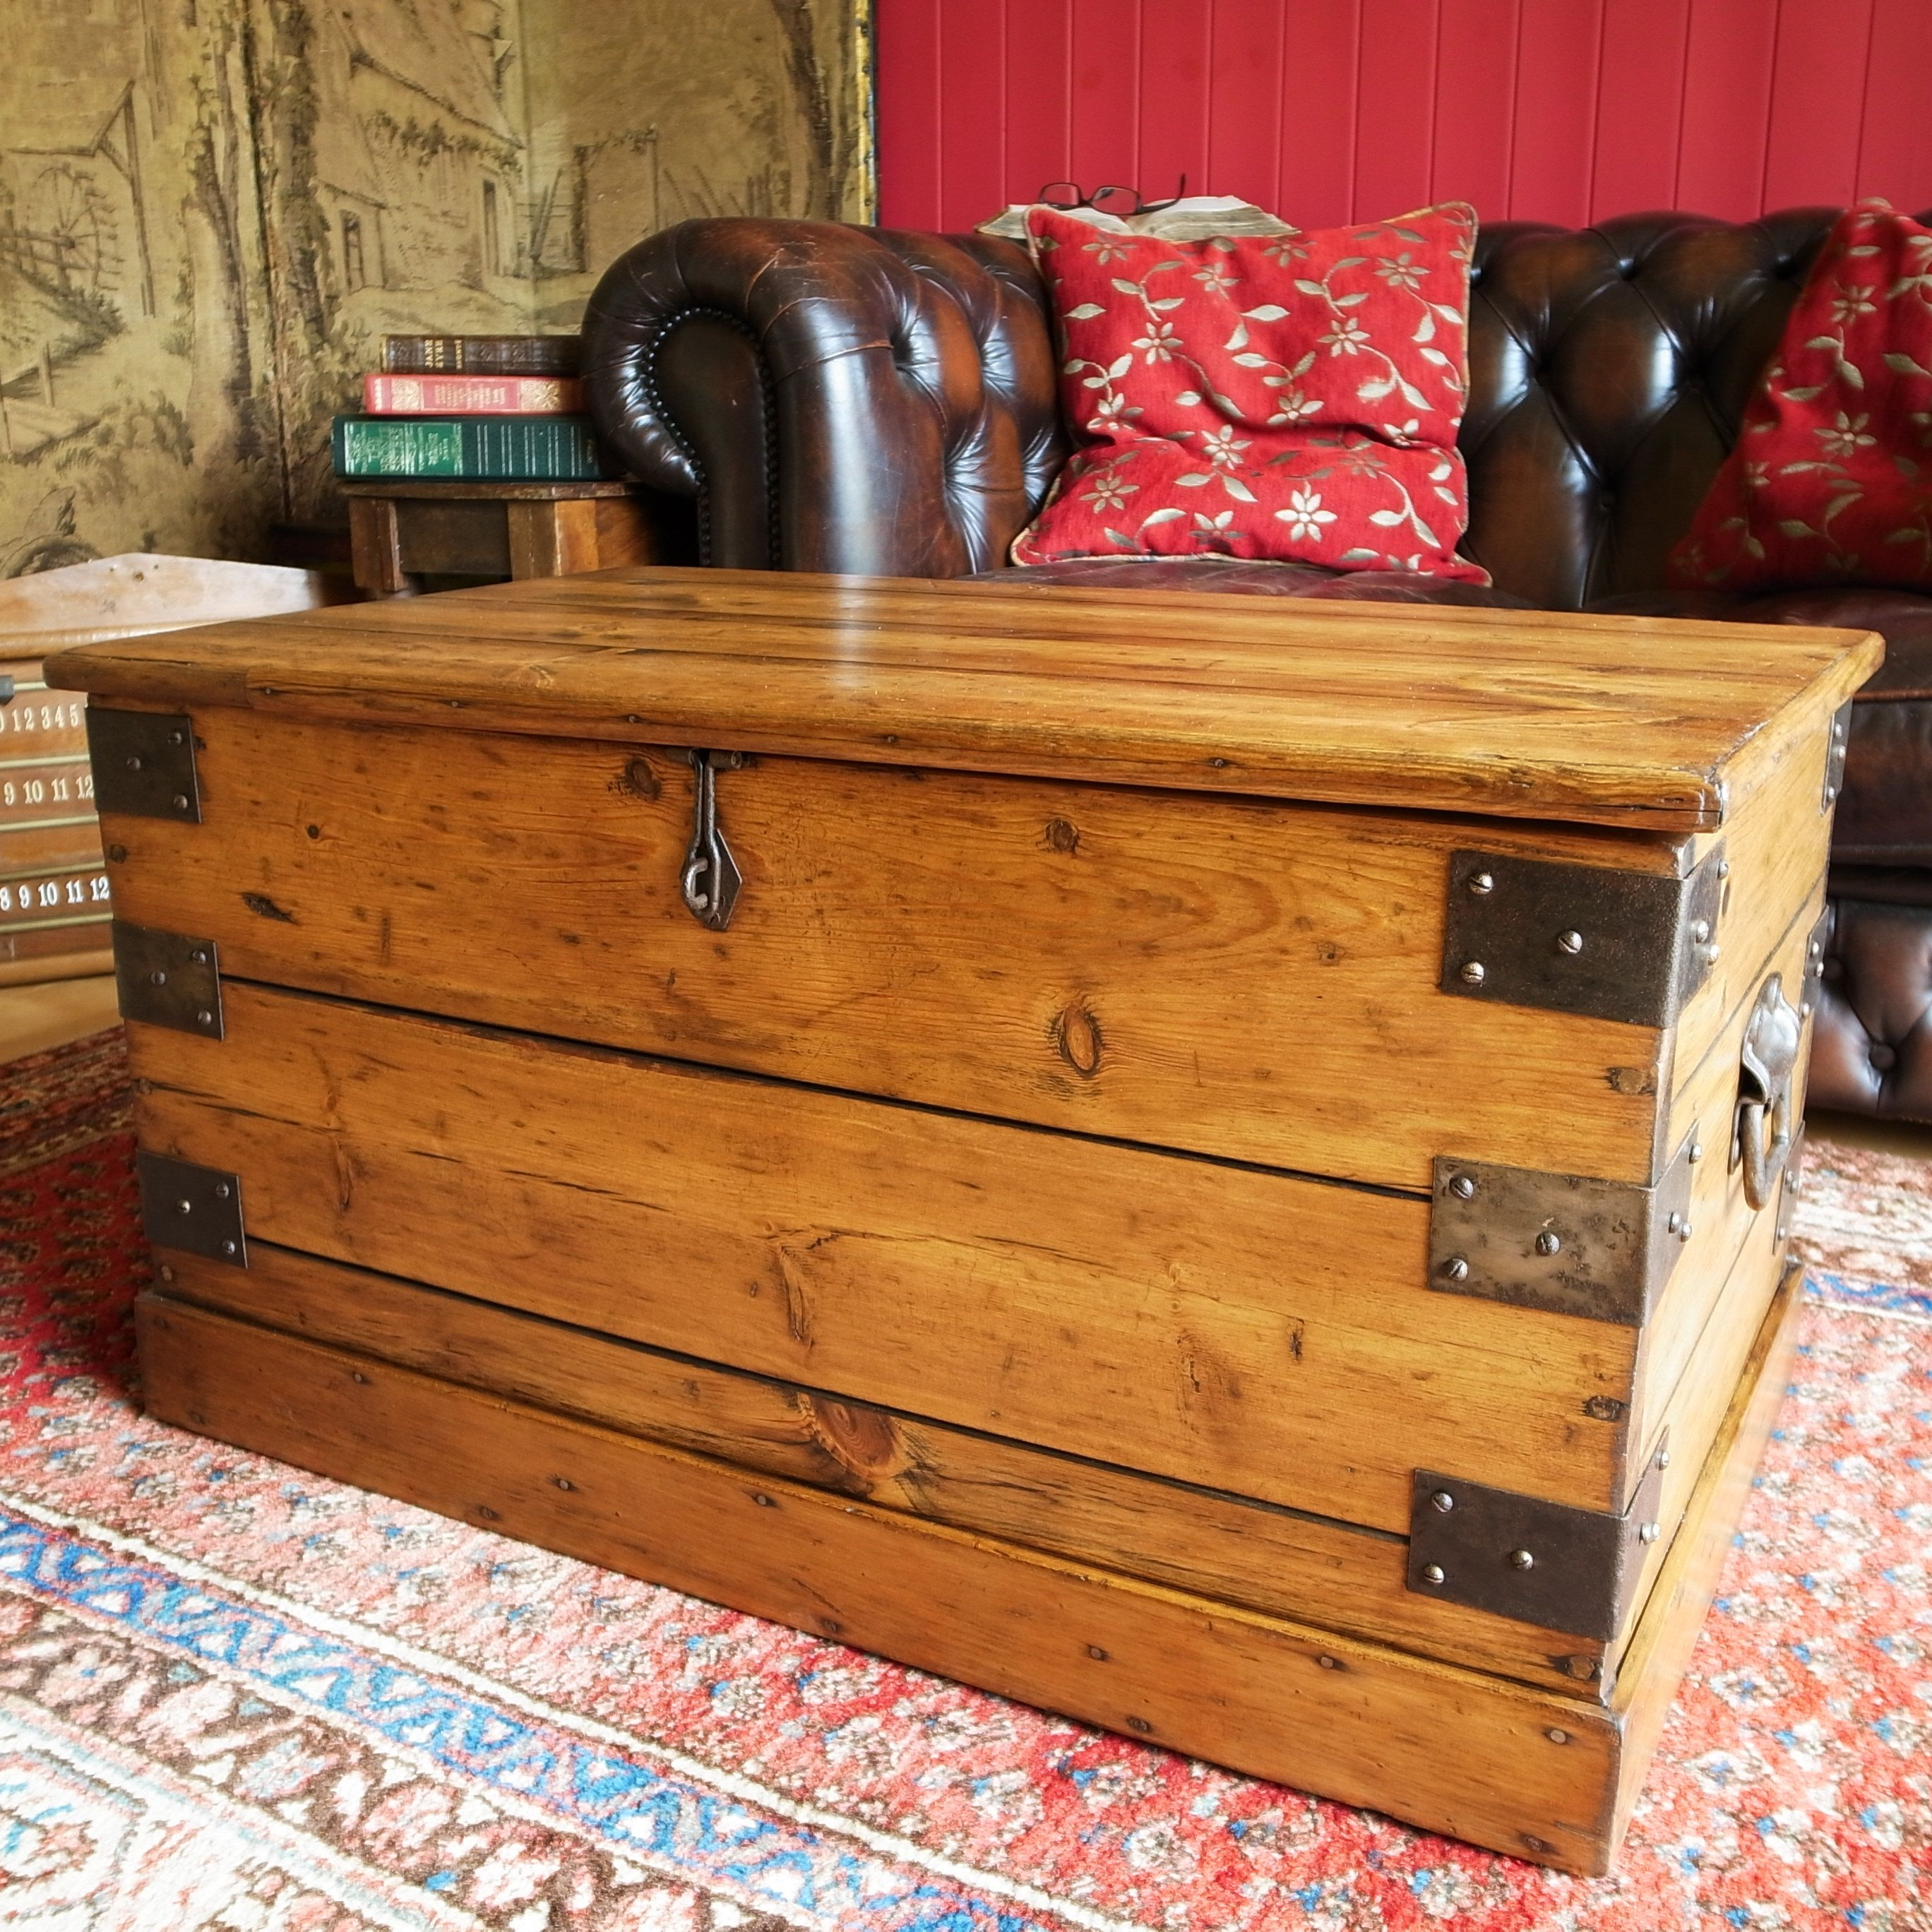 Rustic Coffee Table Reclaimed Industrial Tool Chest Mid Etsy Rustic Coffee Tables Wooden Chest Trunks And Chests [ 2736 x 2736 Pixel ]